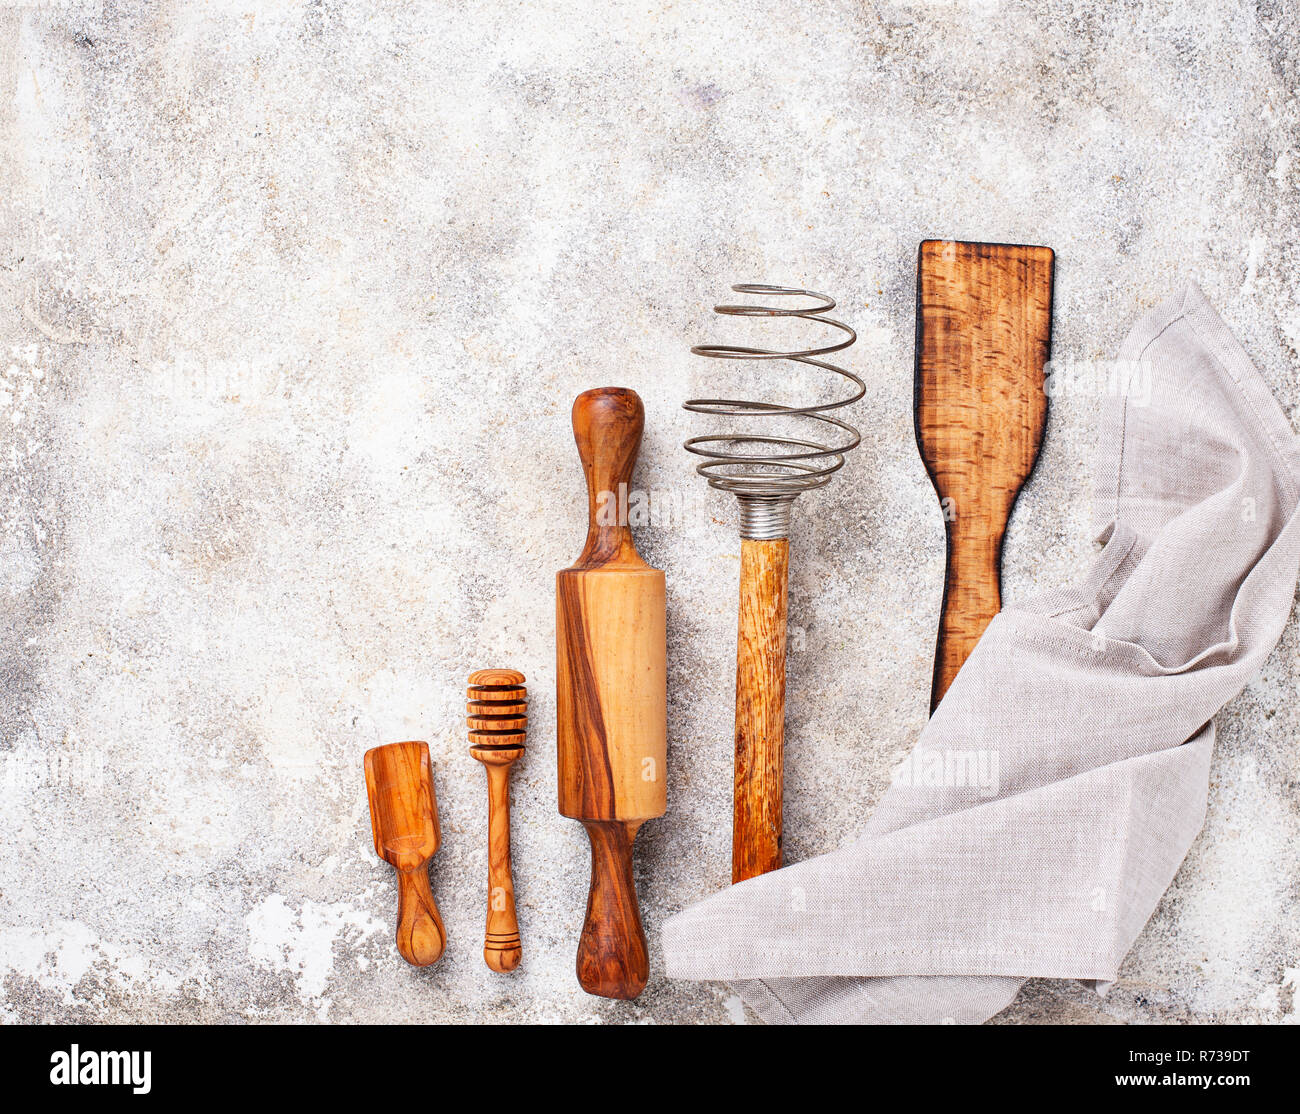 Wooden kitchen utensils from olive wood - Stock Image